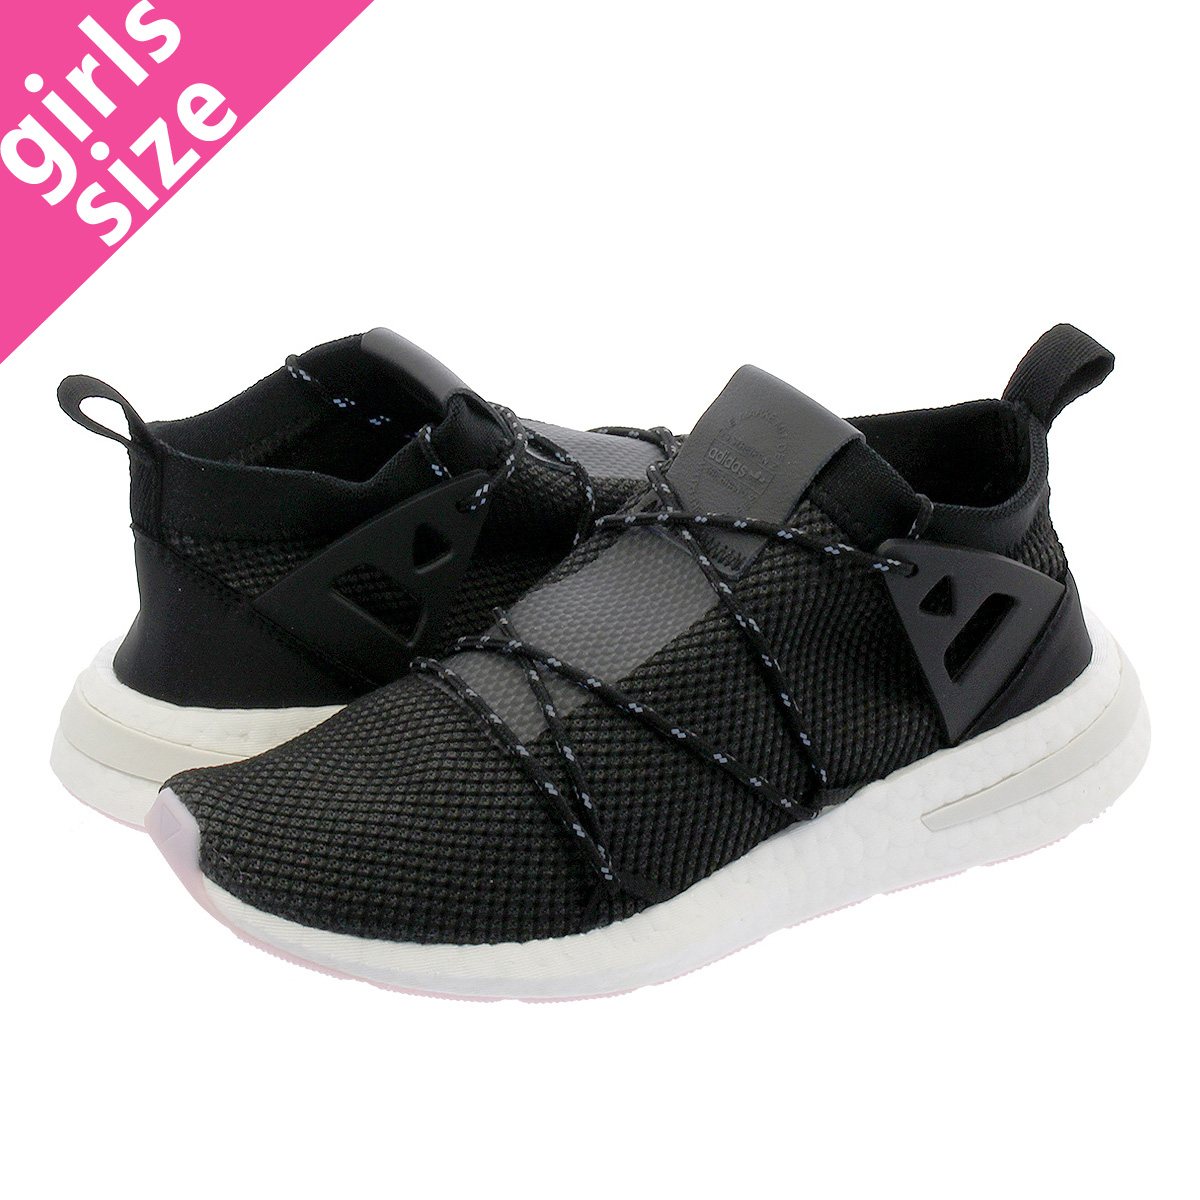 Arkyn Adidas Blackcarbonclear Knit Core W Pink Arkin Women Cg6228 doCerxBW